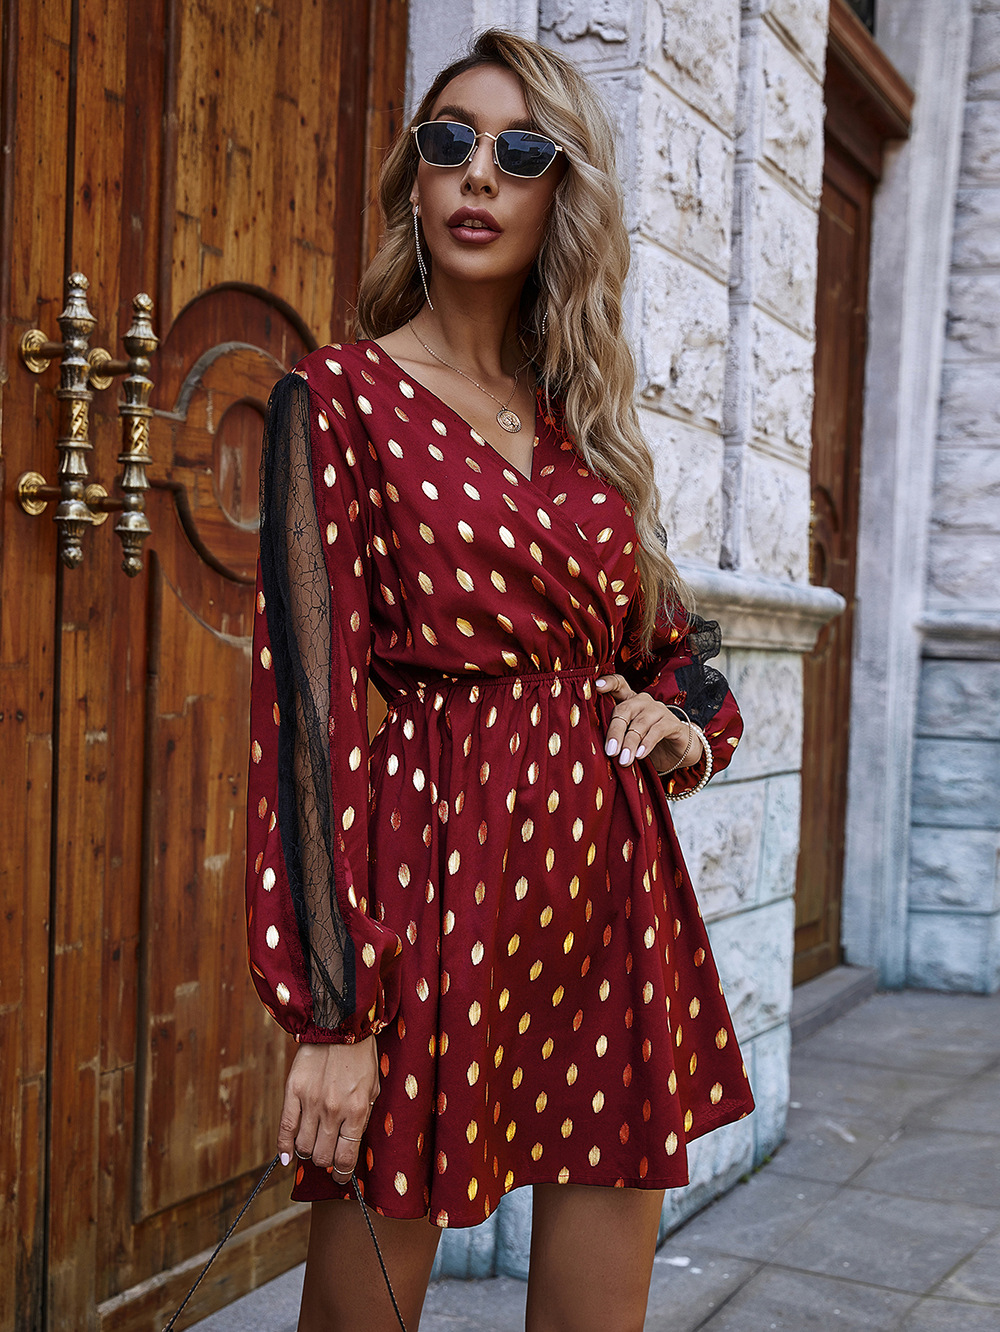 Lace sleeves patchwork black bottom bronzing print autumn and winter dress wholesale NHDF43